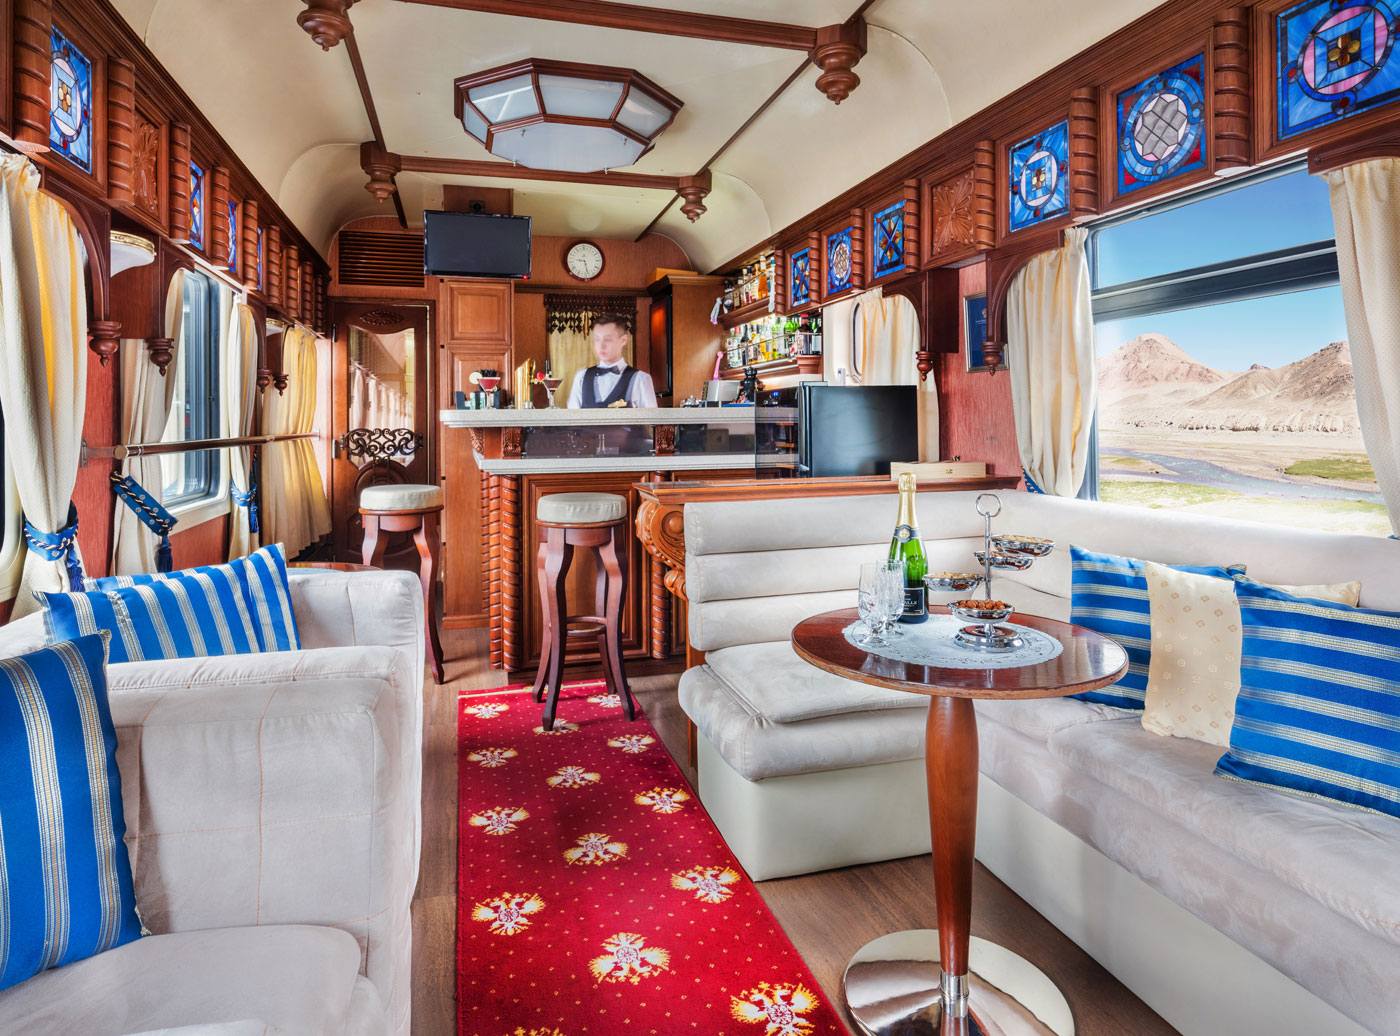 The Romanov Suite - An Entire Private Carriage Aboard the Golden Eagle Train 14